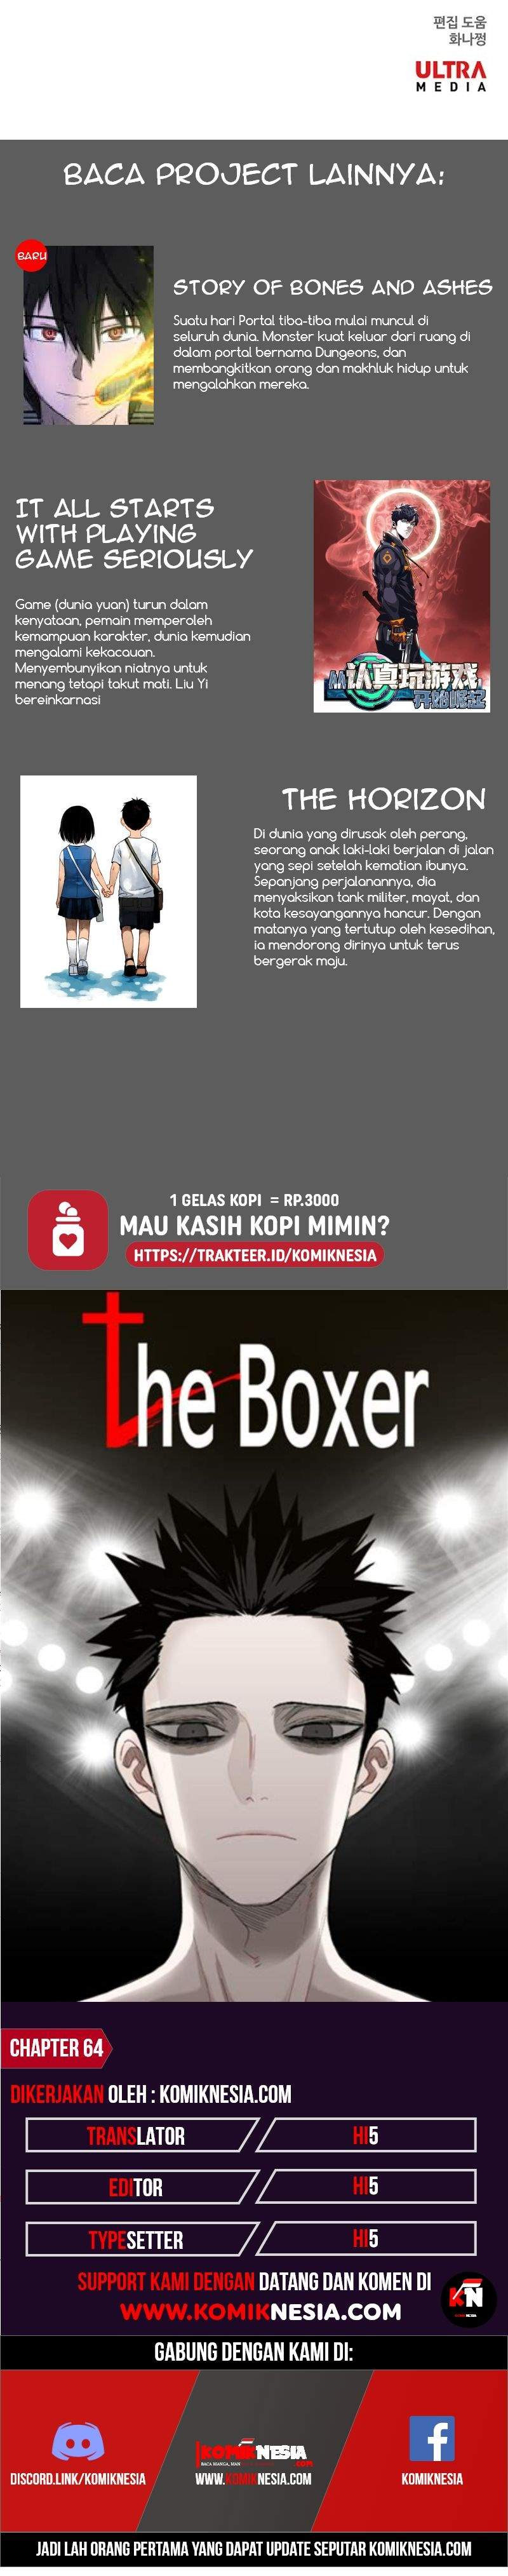 The Boxer Chapter 64